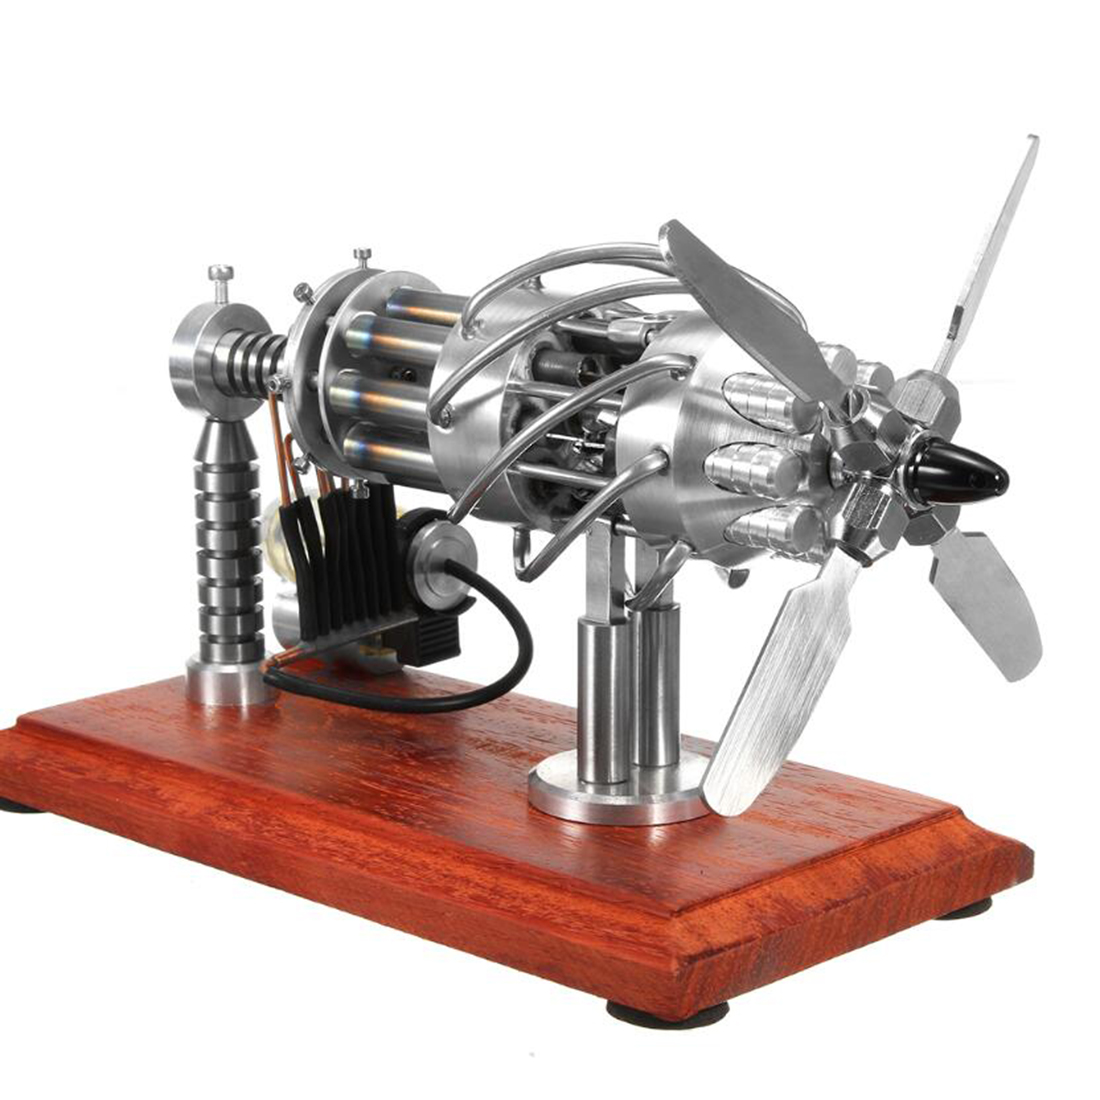 Hot Air Stirling Engine Motor Model 16 Cylinders Swash Plate Physics Educational Toys For Kids Scientific